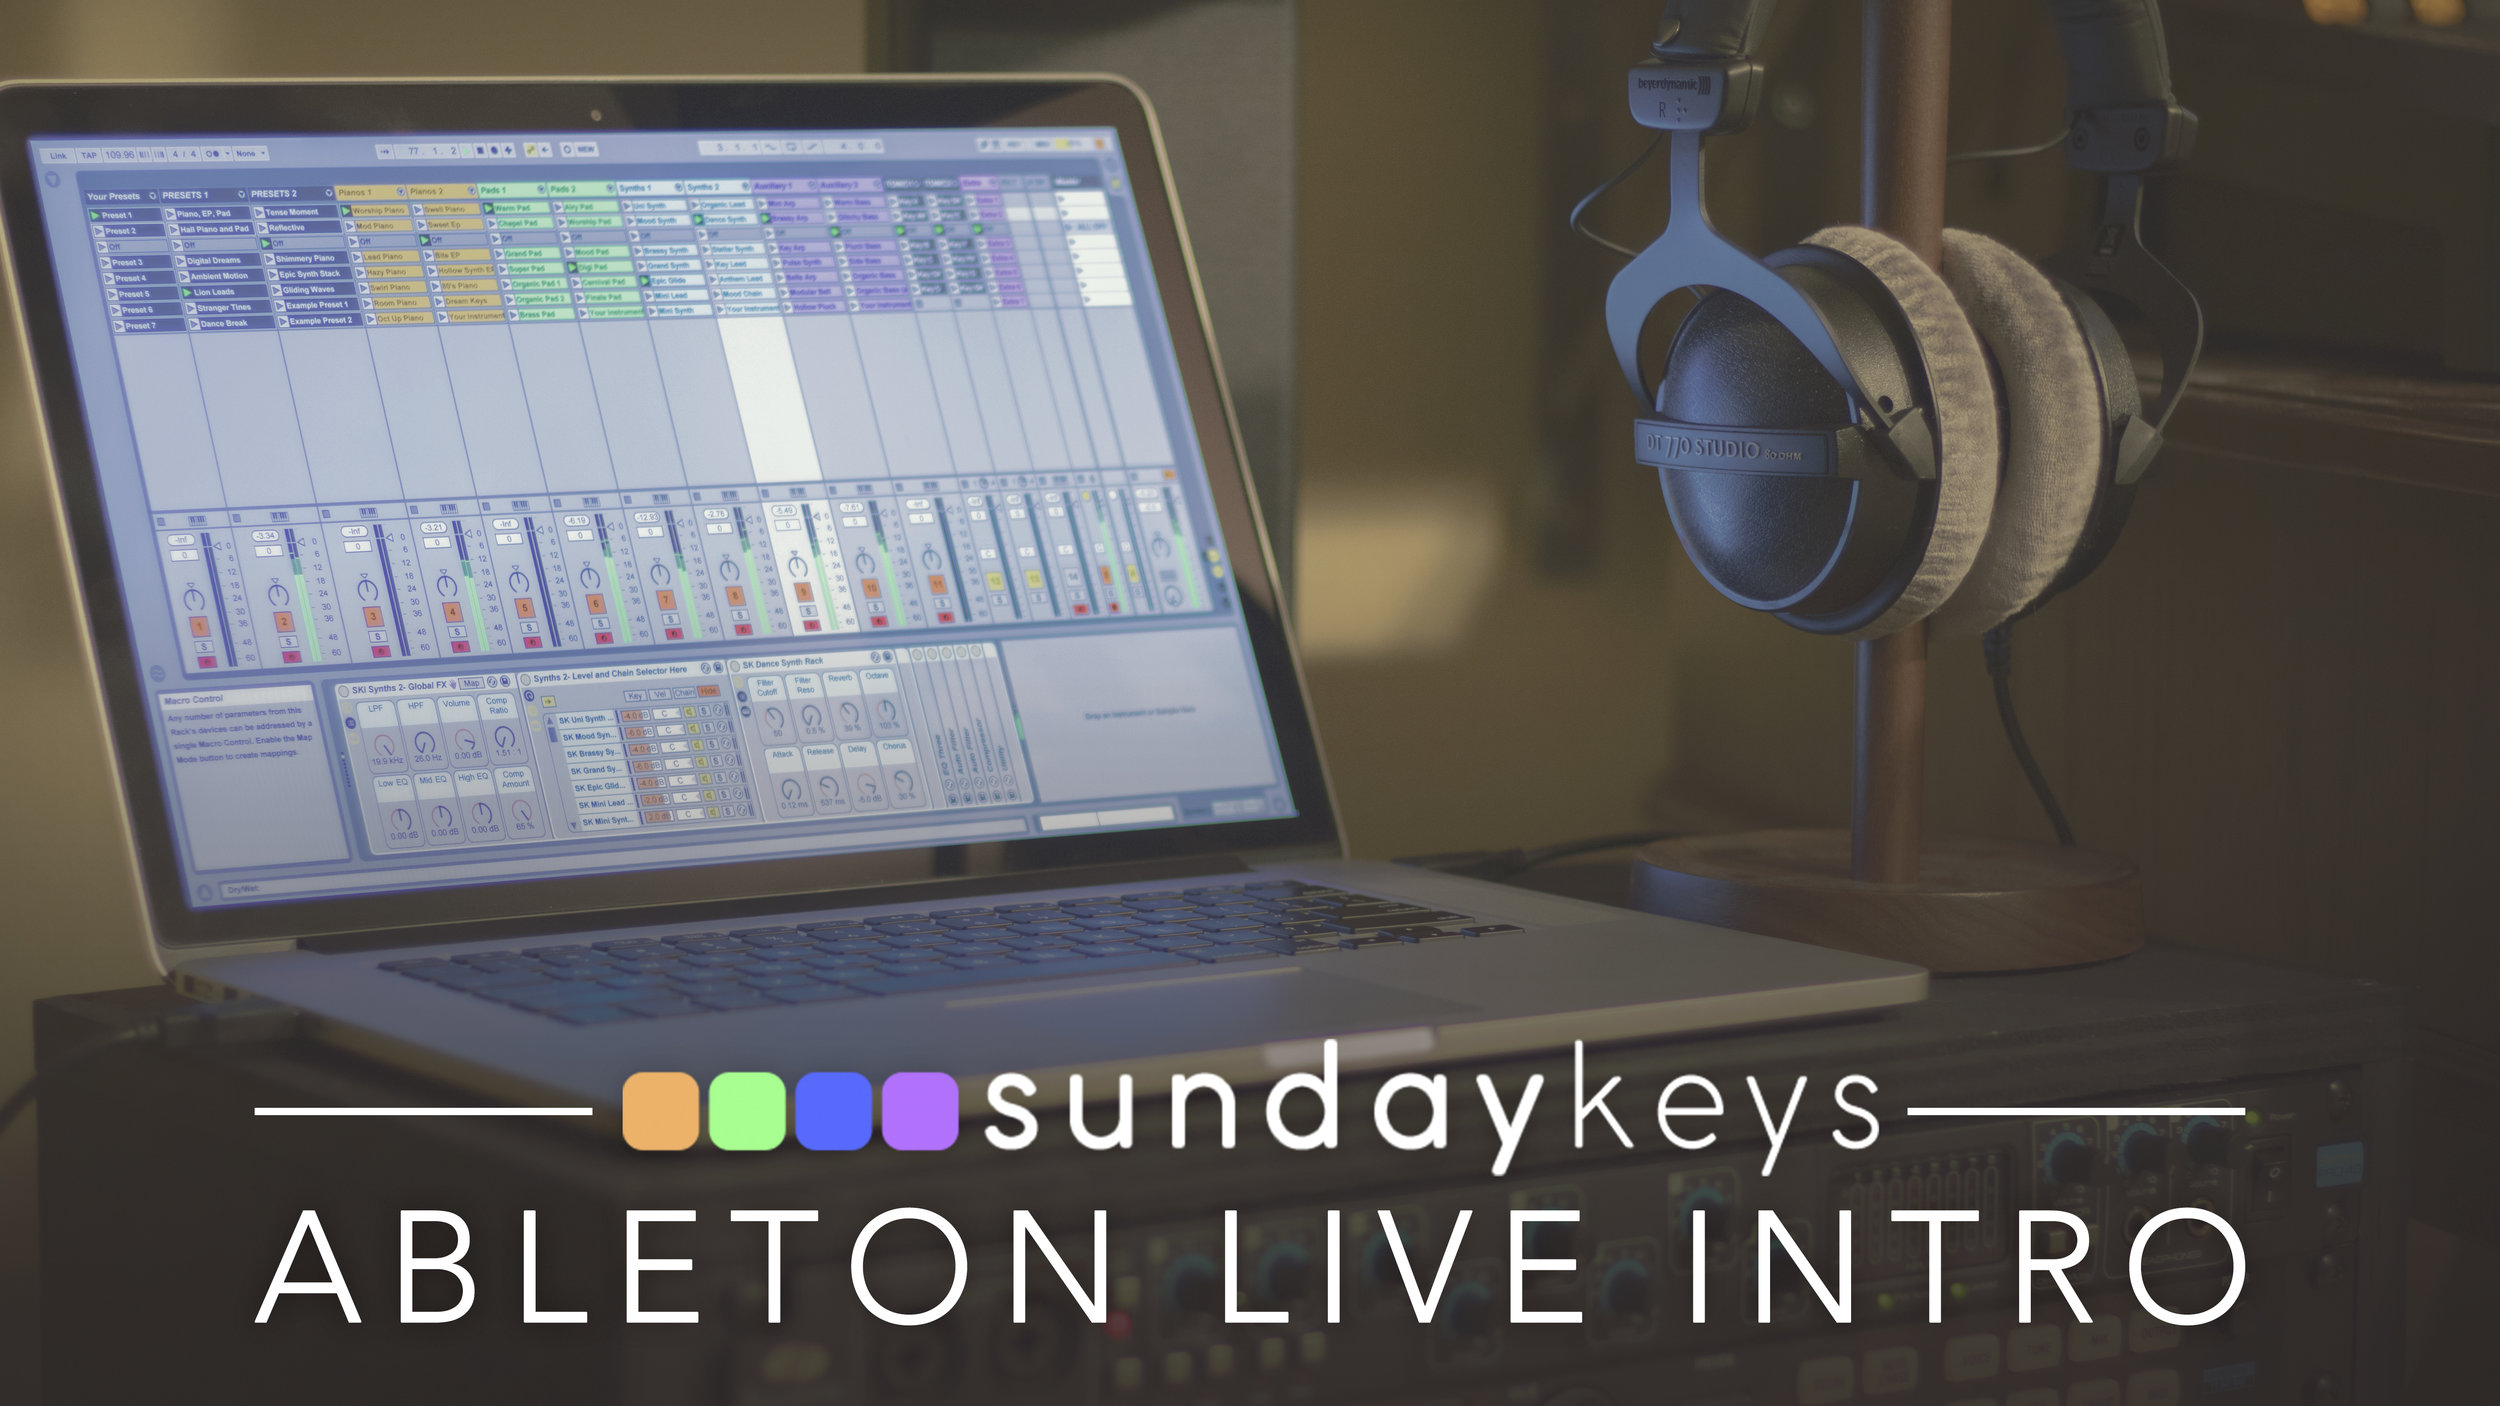 ableton-live-sunday-keys-worship-template-patches-rig-patch-warm-pad-worship-pad-synth-lead-bass-arp-arps-ableton-live-intro-live-suite-standard-windows-keyboard-mac-keys-rig-sunday-sounds-worship-sounds-sundaysounds-sunday-sound-hillsong-pathces-free.jpg